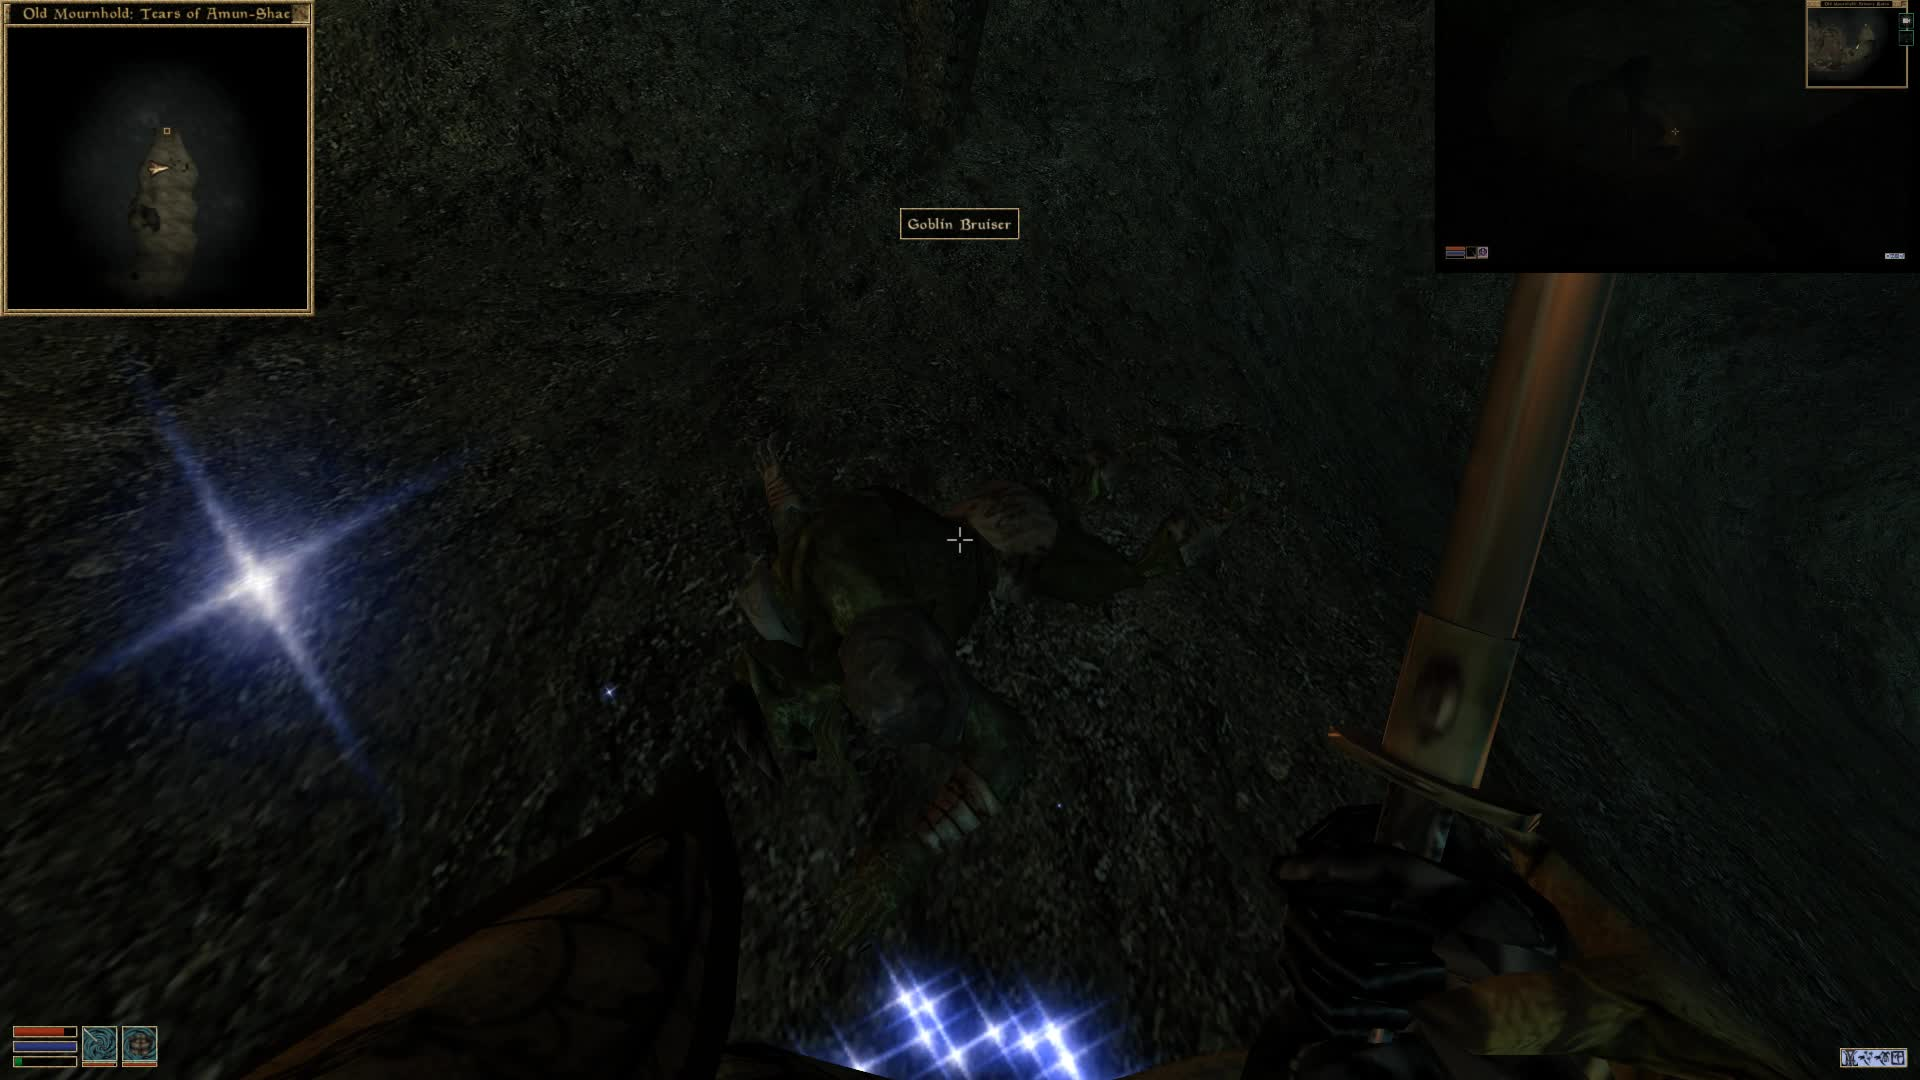 morrowind, openmw, tes3mp, crouched GIFs